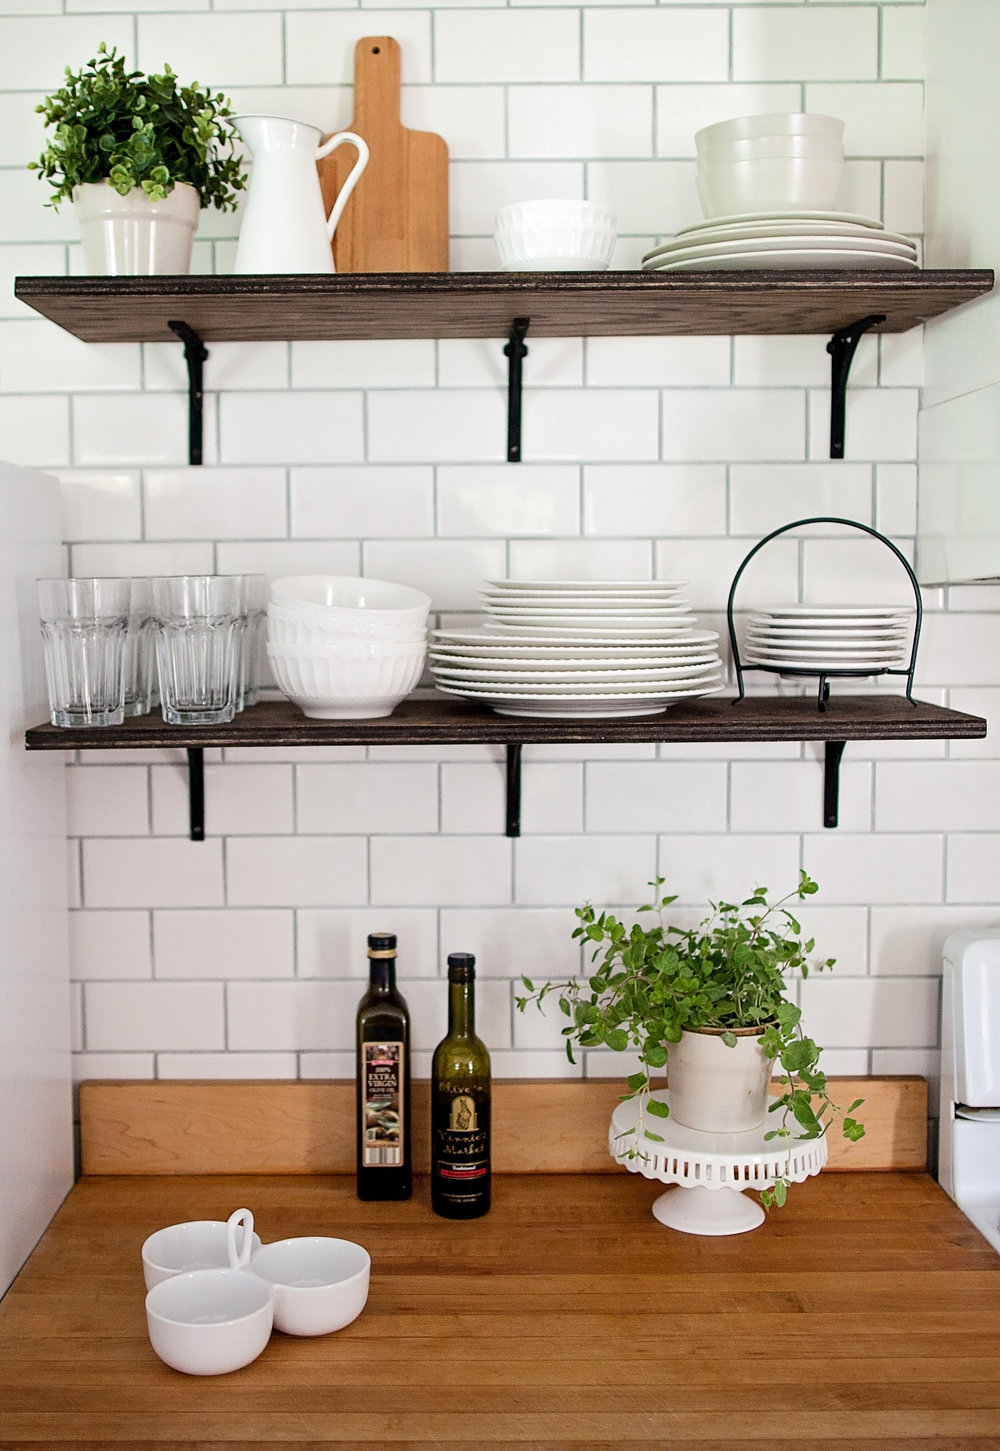 Farmhouse Kitchen Open Shelving- Laura Design Co.